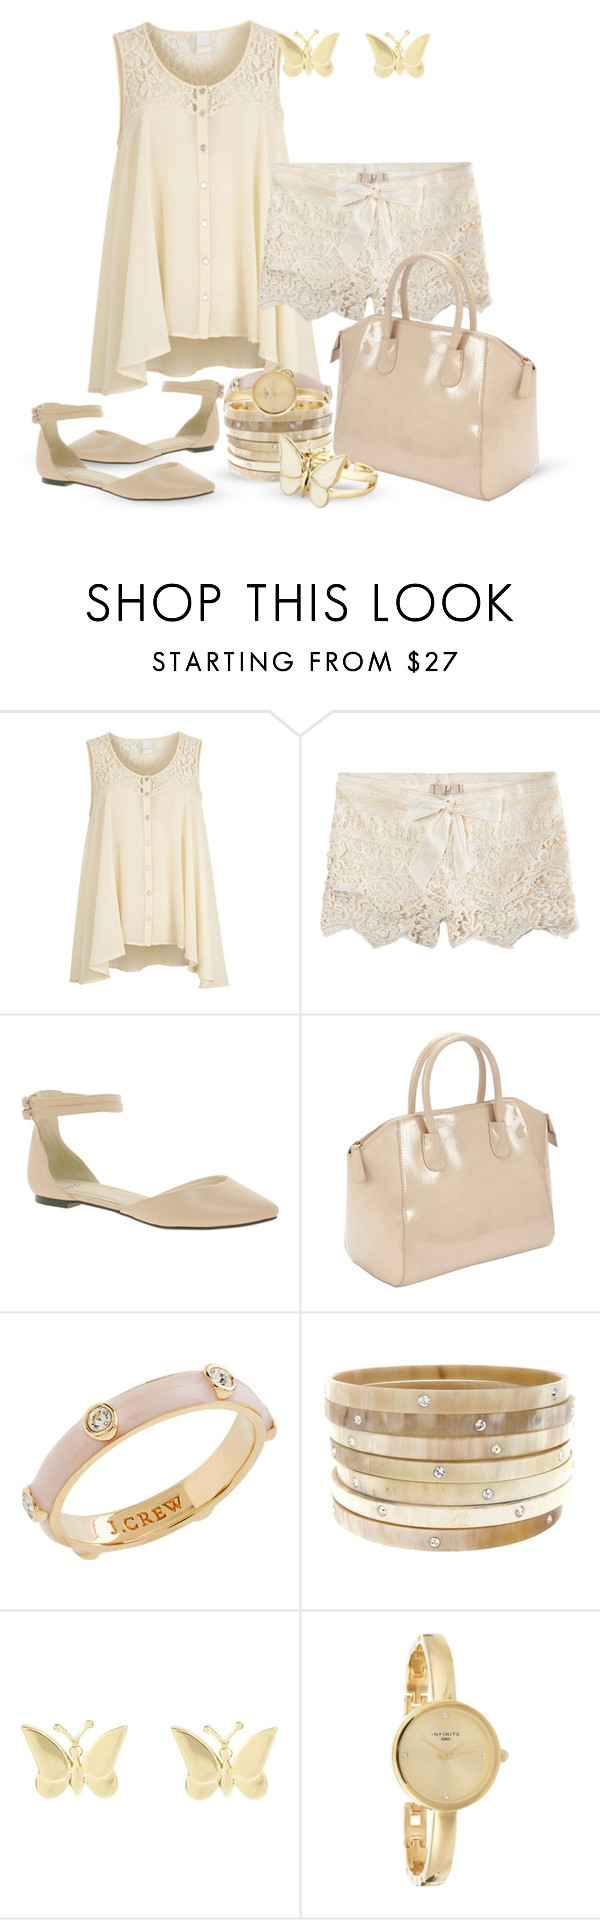 """""""Summer lace"""" by inmango ❤ liked on Polyvore featuring VILA, ...Lost, ASOS, John Lewis, J.Crew, Finesse and Infinite"""